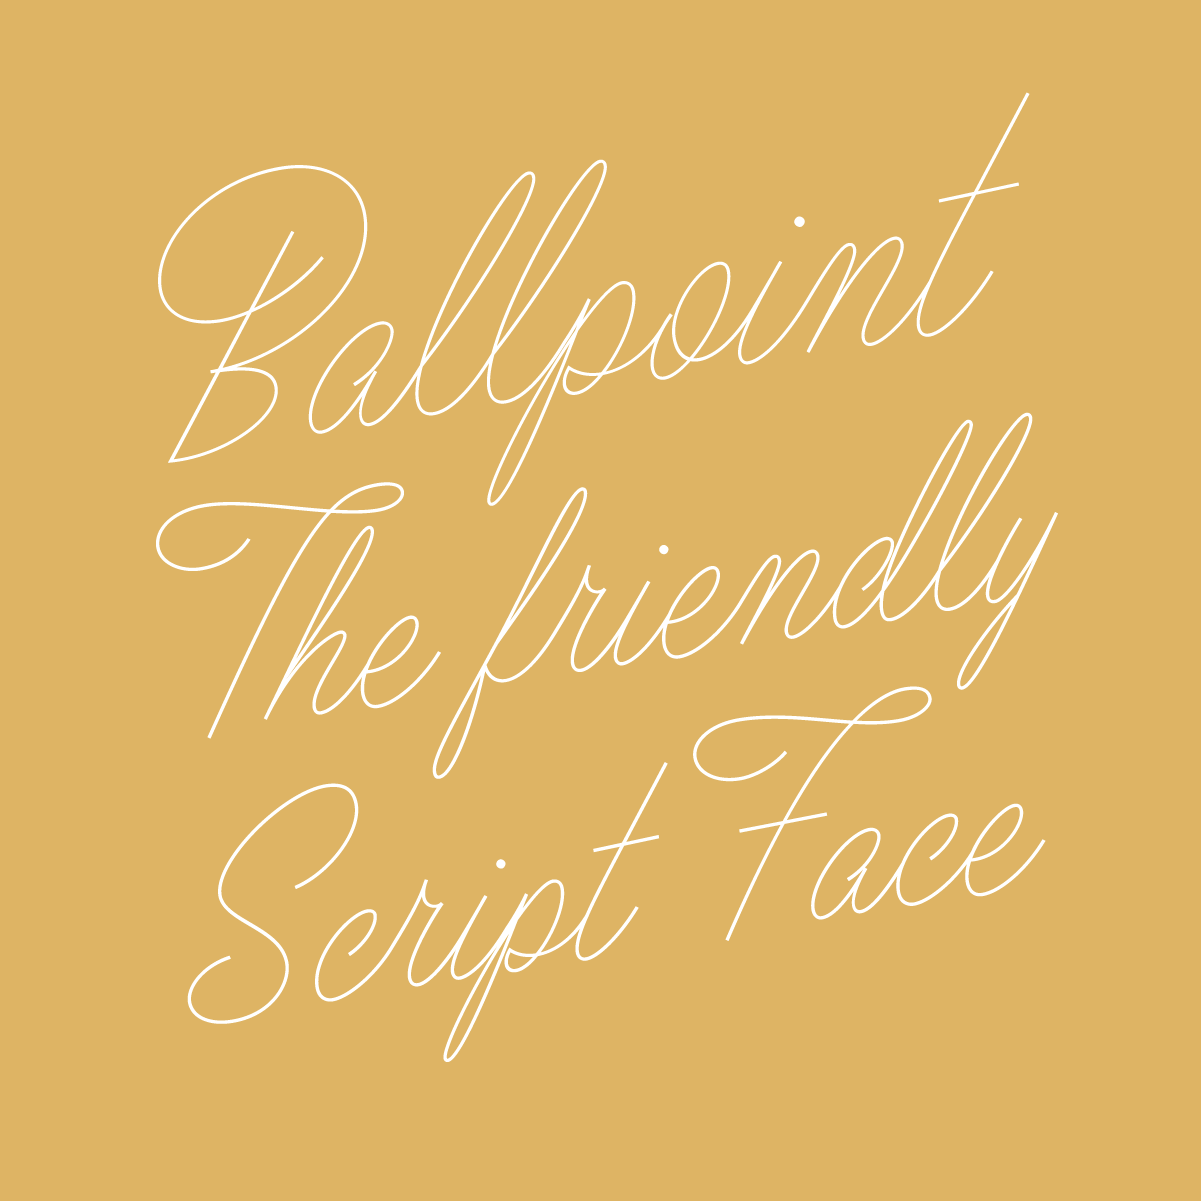 Ballpoint Script, a new typeface designed by Drew Melton for Typeverything.com